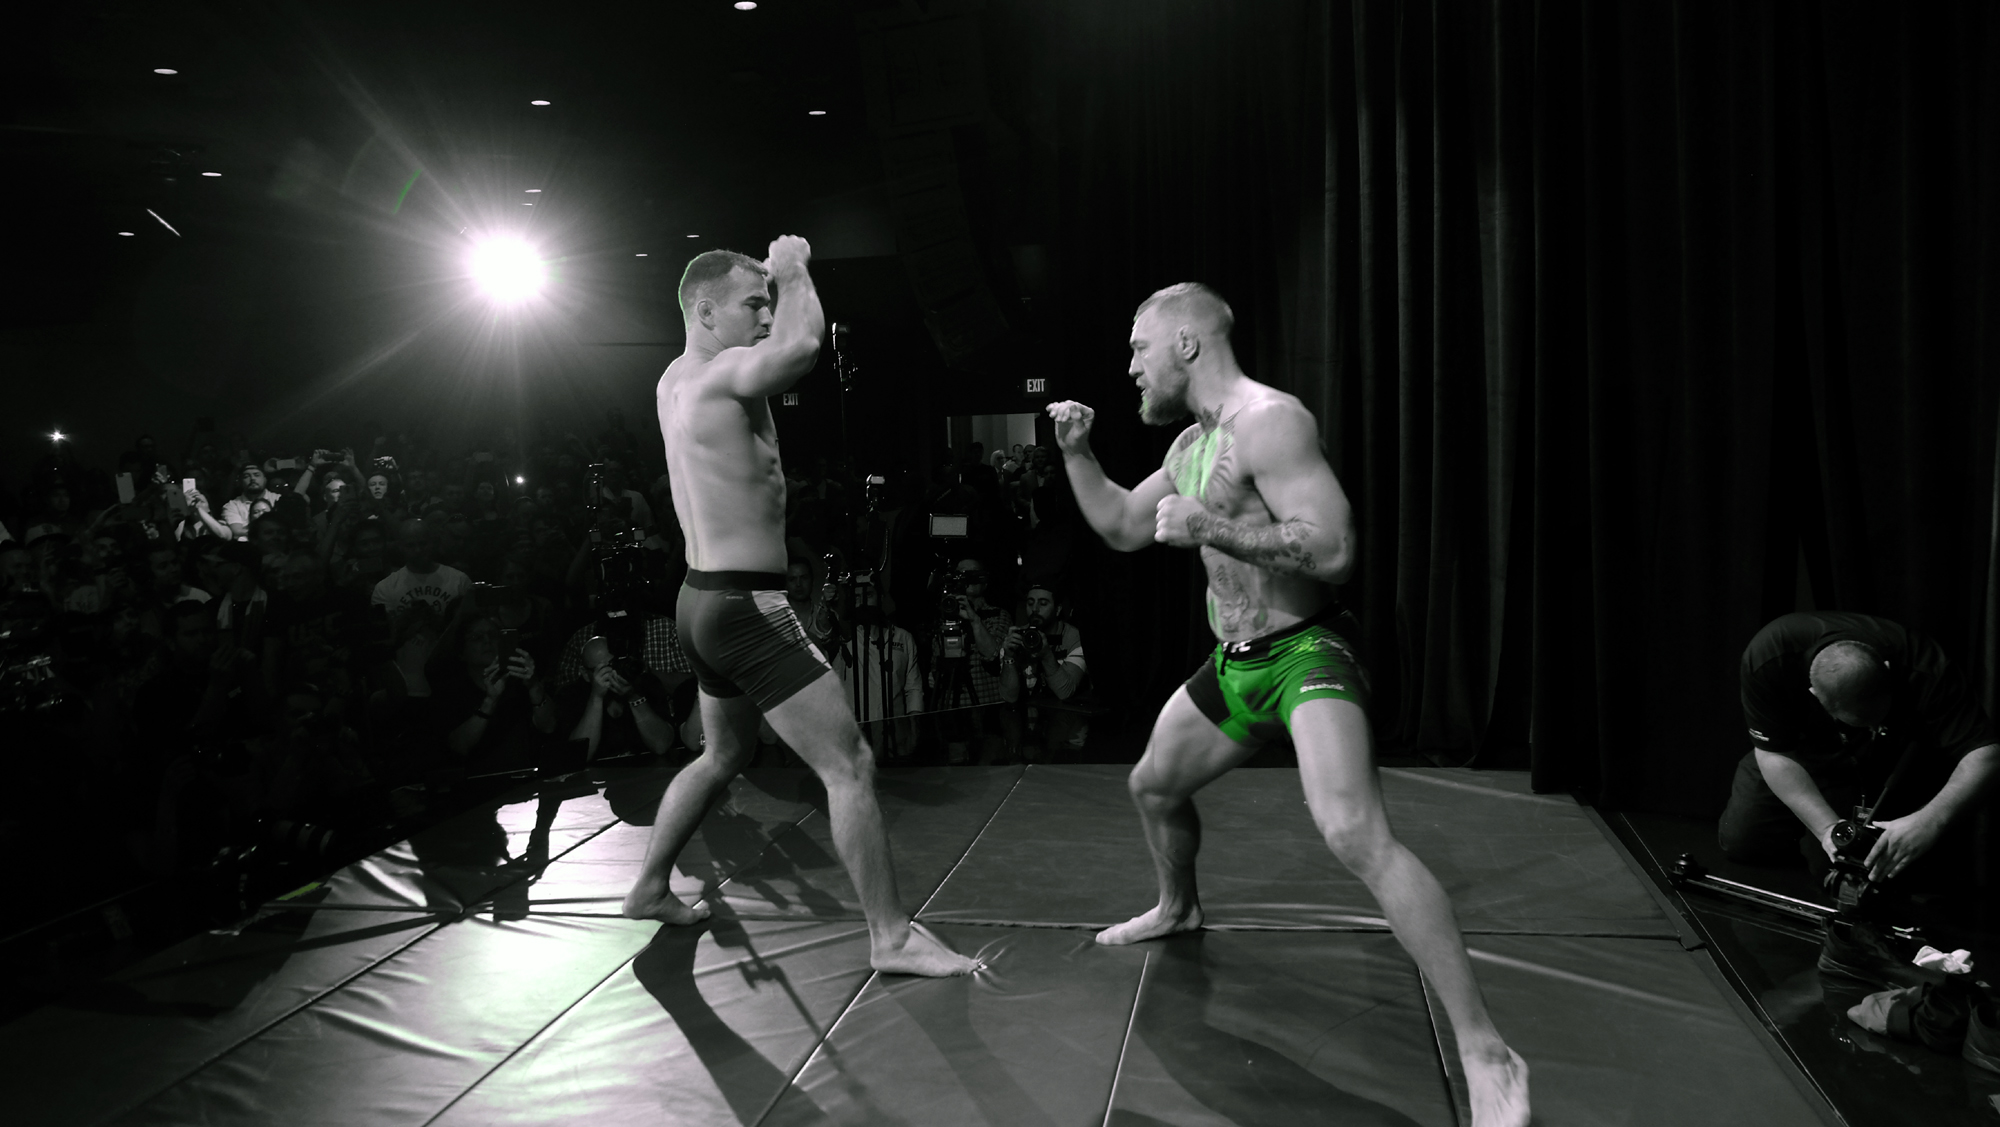 Conor Mcgregor Wallpaper Black And White: The Downes Side – UFC 196 Predictions